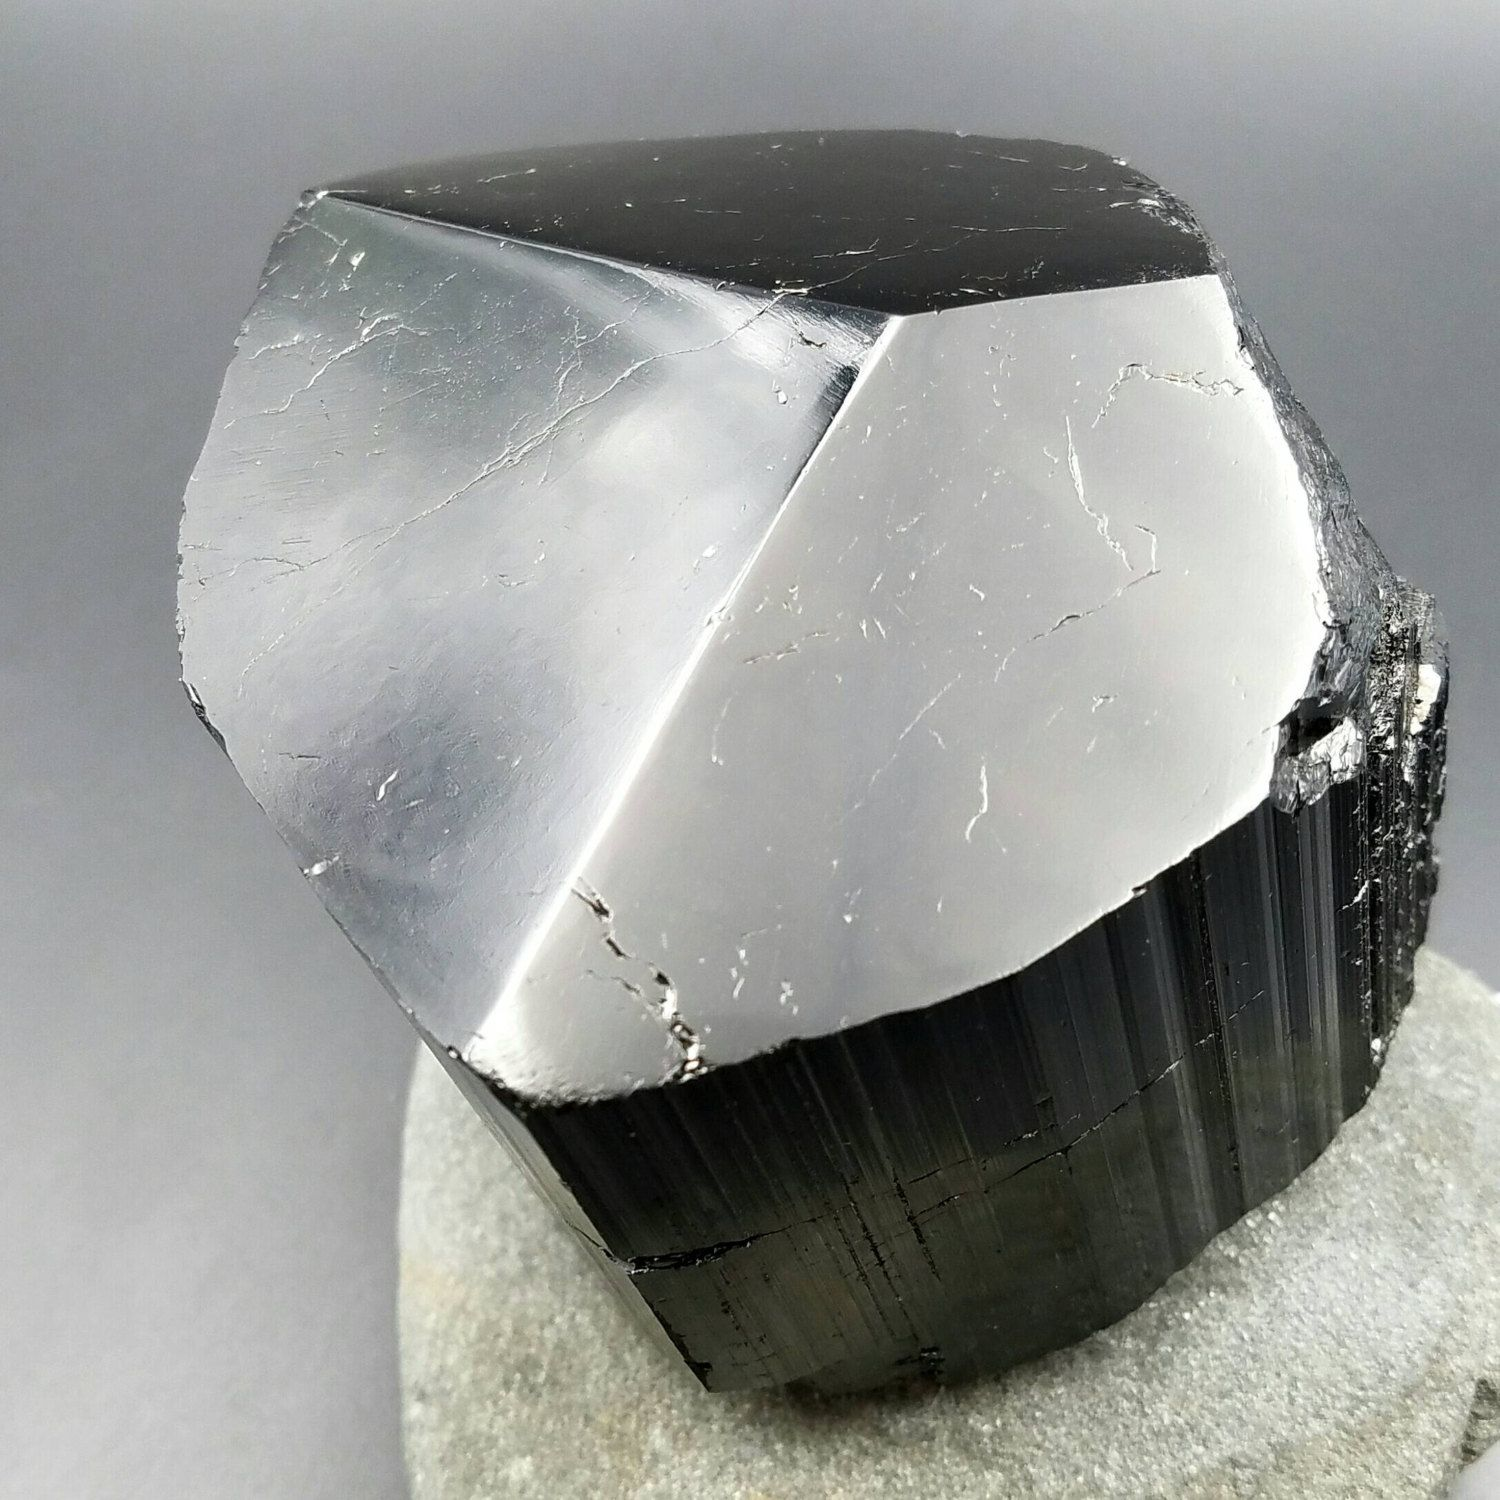 This listing is for one premium extra large BLACK TOURMALINE crystal. This terminated specimen is a collectors item of stunning quality with glossy shine that does not compare to the rough type of black tourmaline on the market.  Black Tourmaline is a excellent protection and grounding crystal. It is also known as Schorl. Black tourmaline has unique properties of being pyroelectric and piezoelectric. Black tourmaline also has a trigonal crystal structure with a Mohs hardness of 7 to 7.5…